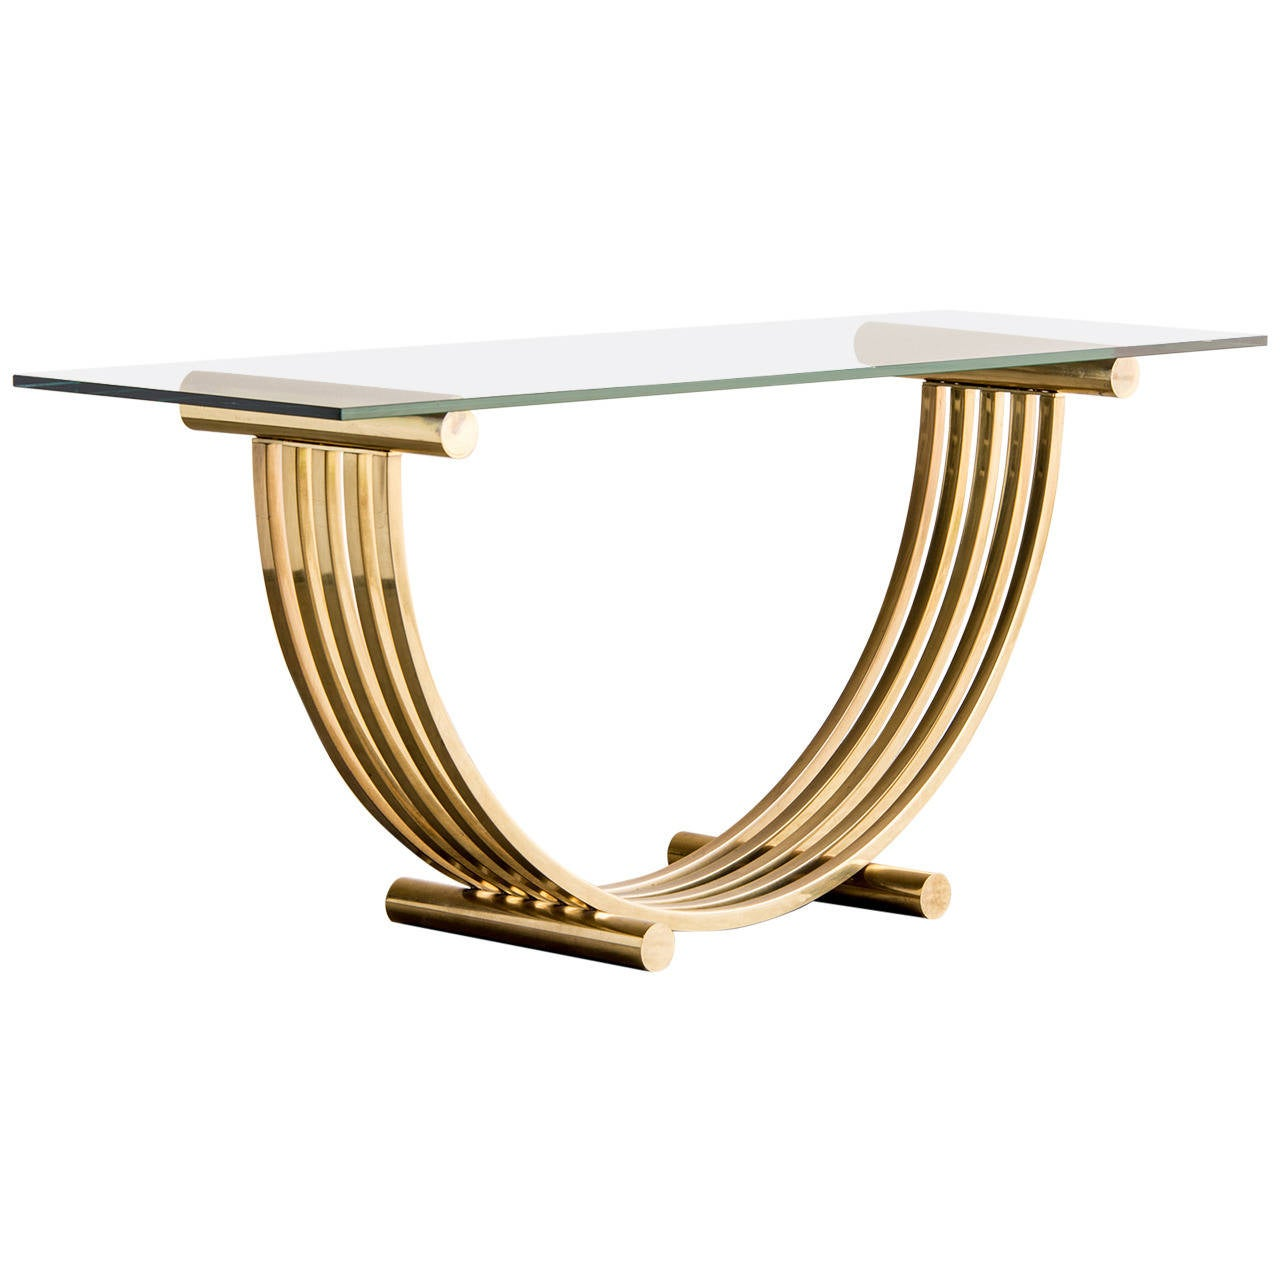 Romeo Rega Midcentury Modern Brass Glass Top Console Table